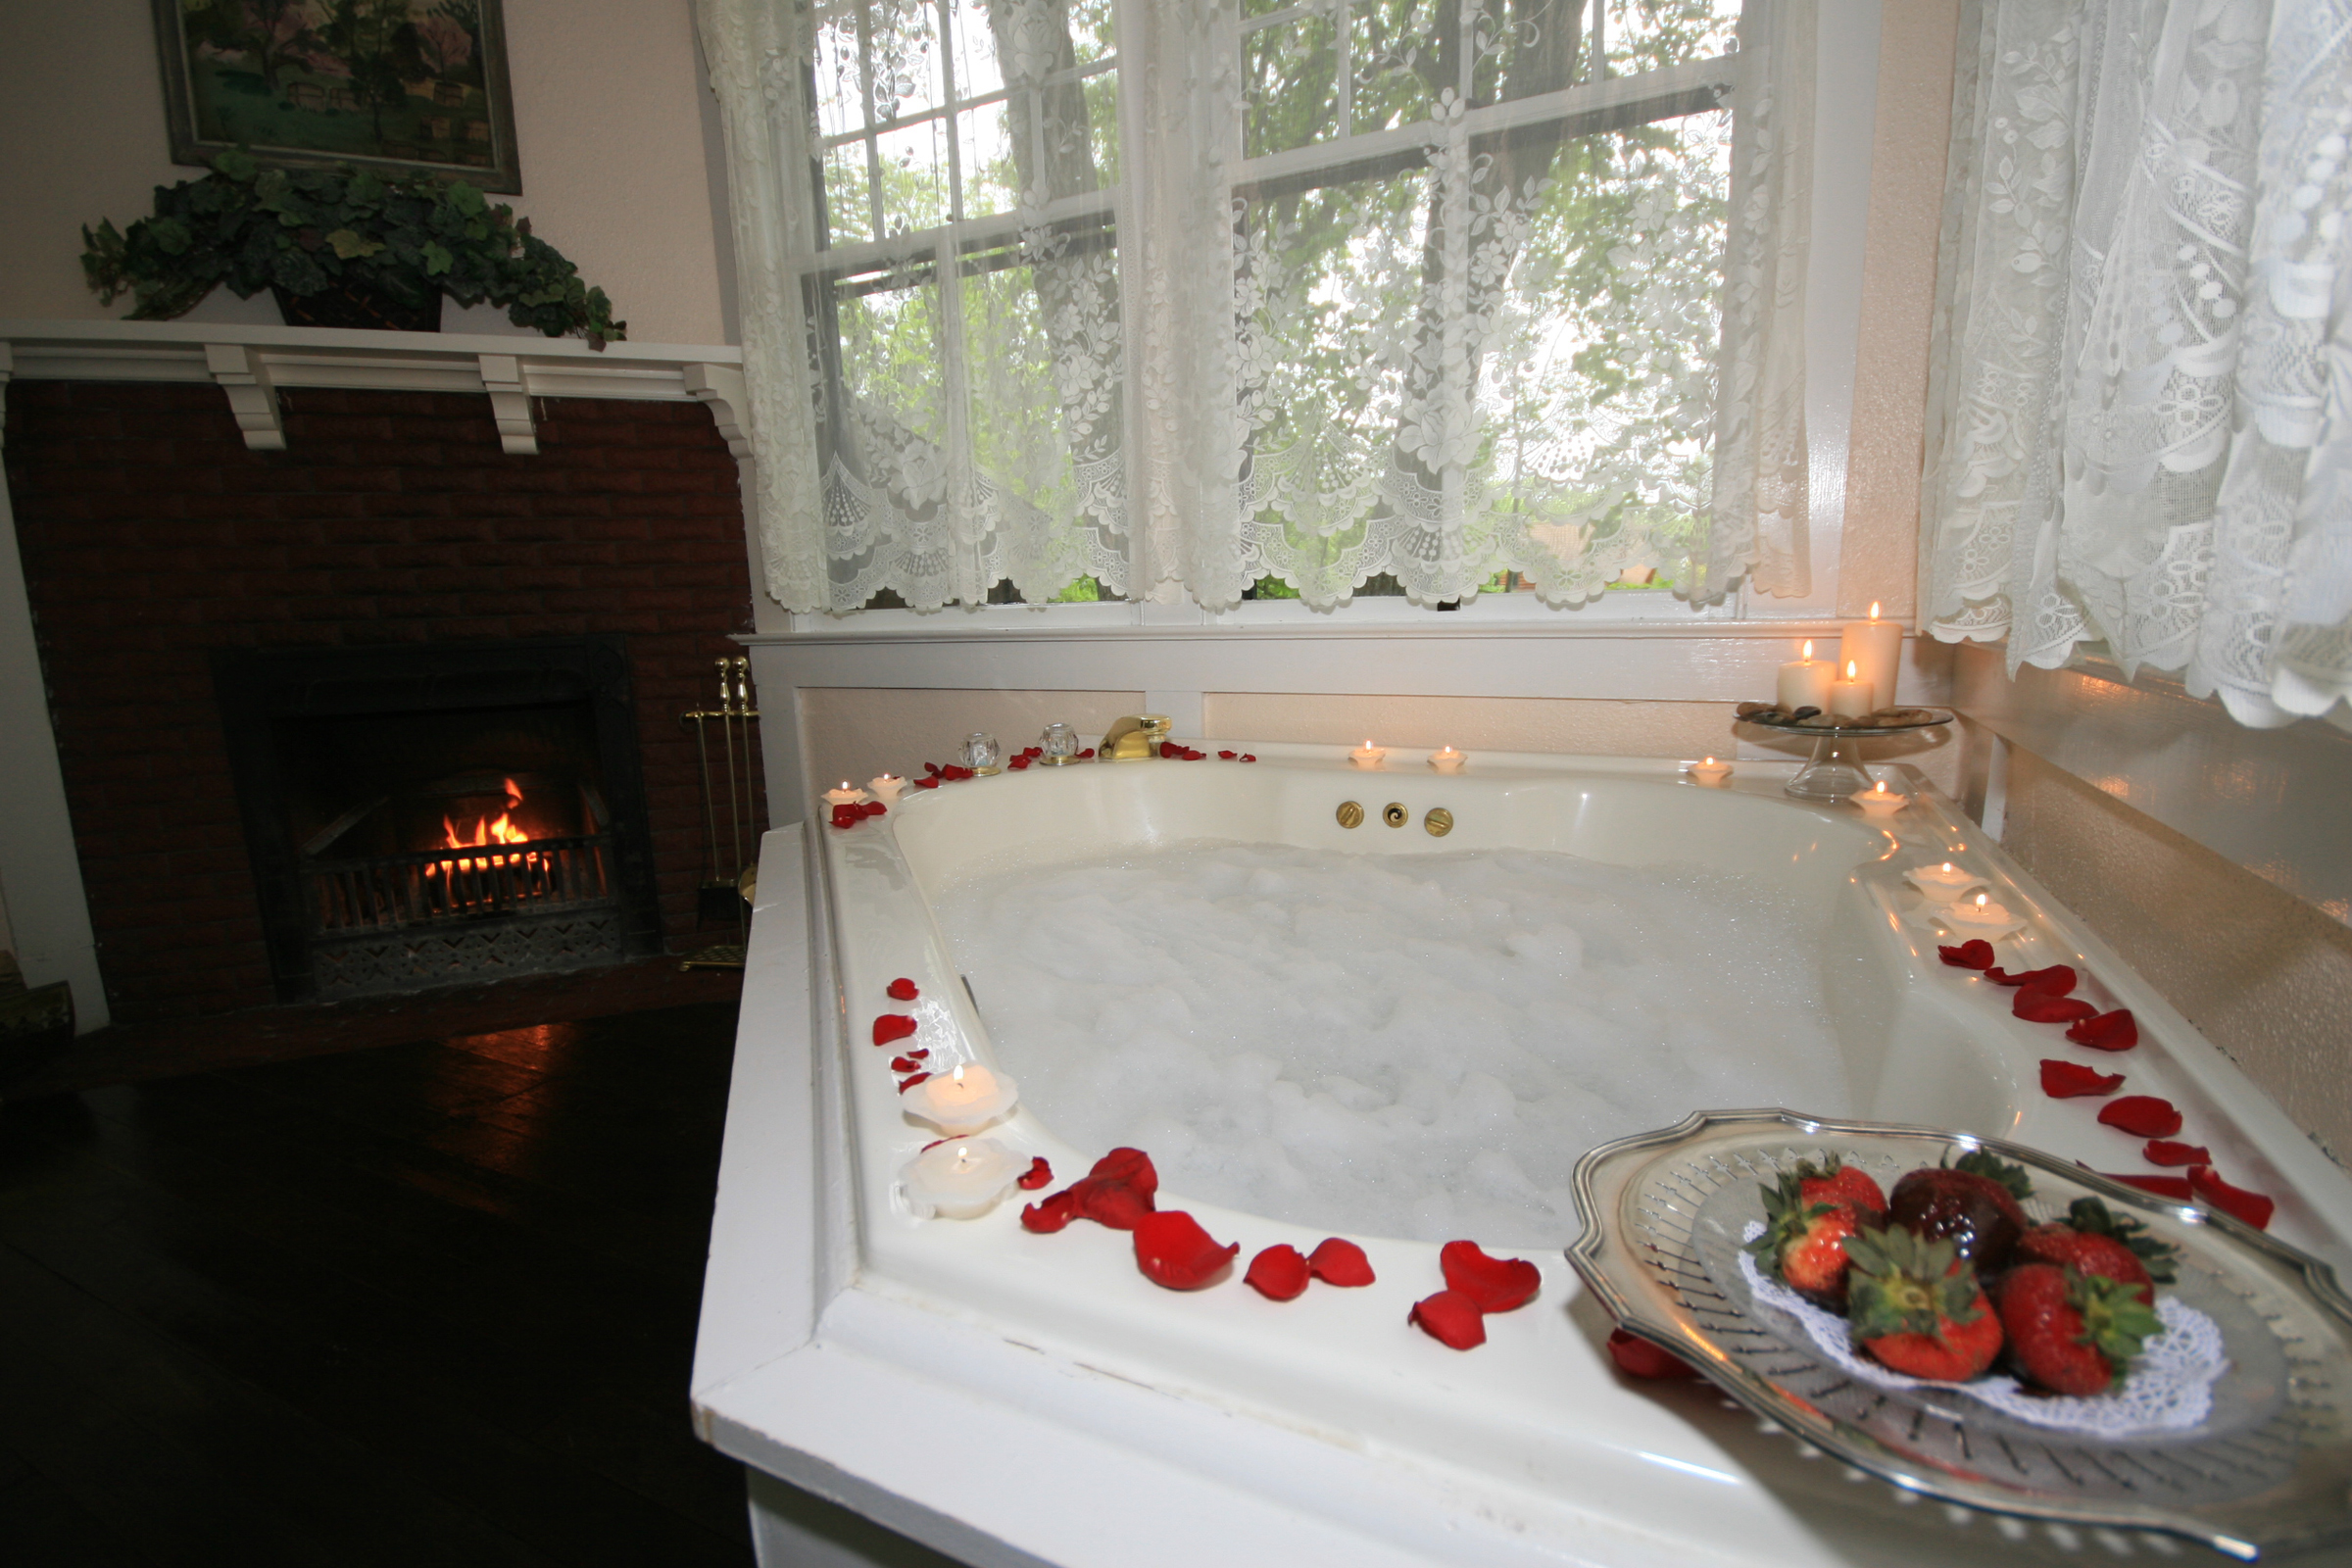 Relax in the double whirlpool tub